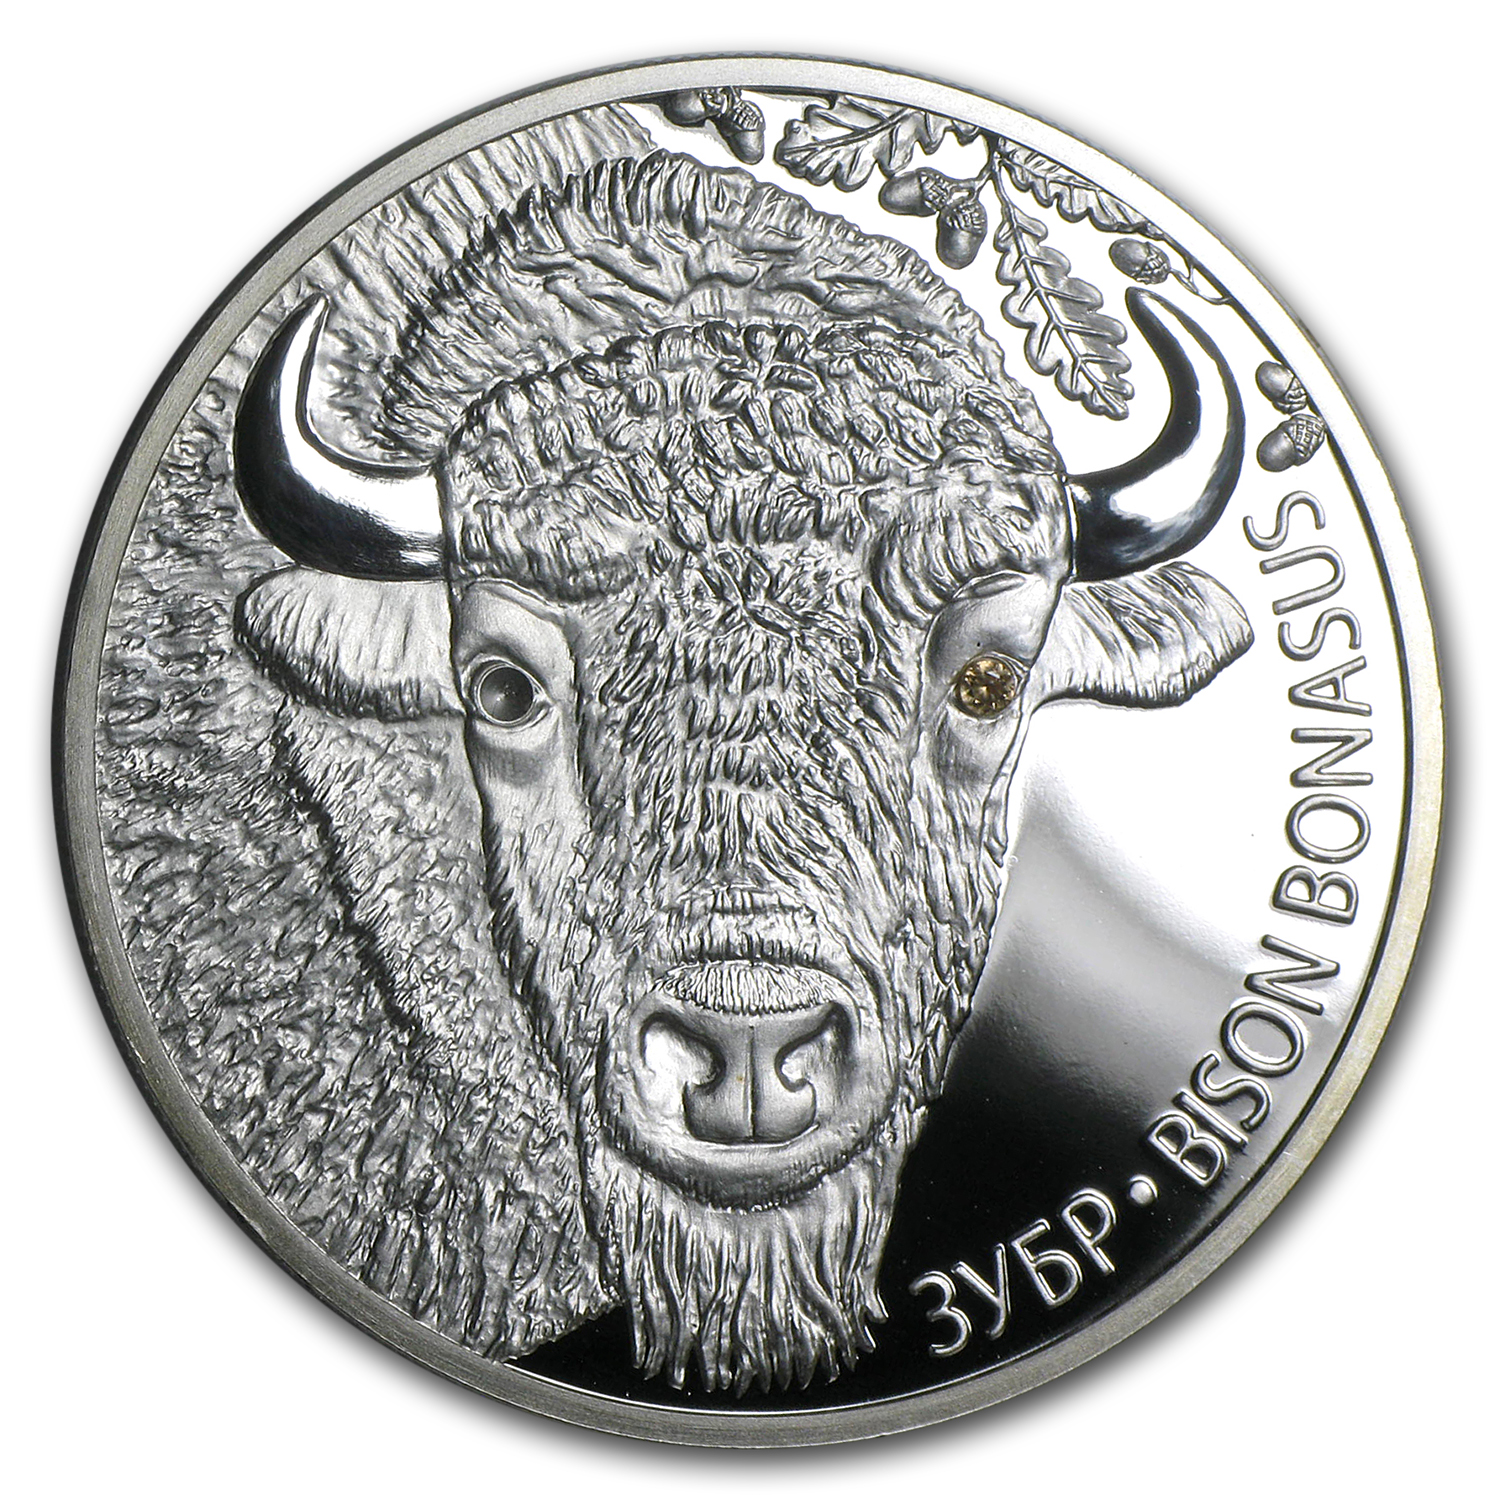 2012 Belarus 1 oz Silver Proof 20 Rubles Bison (Damaged)